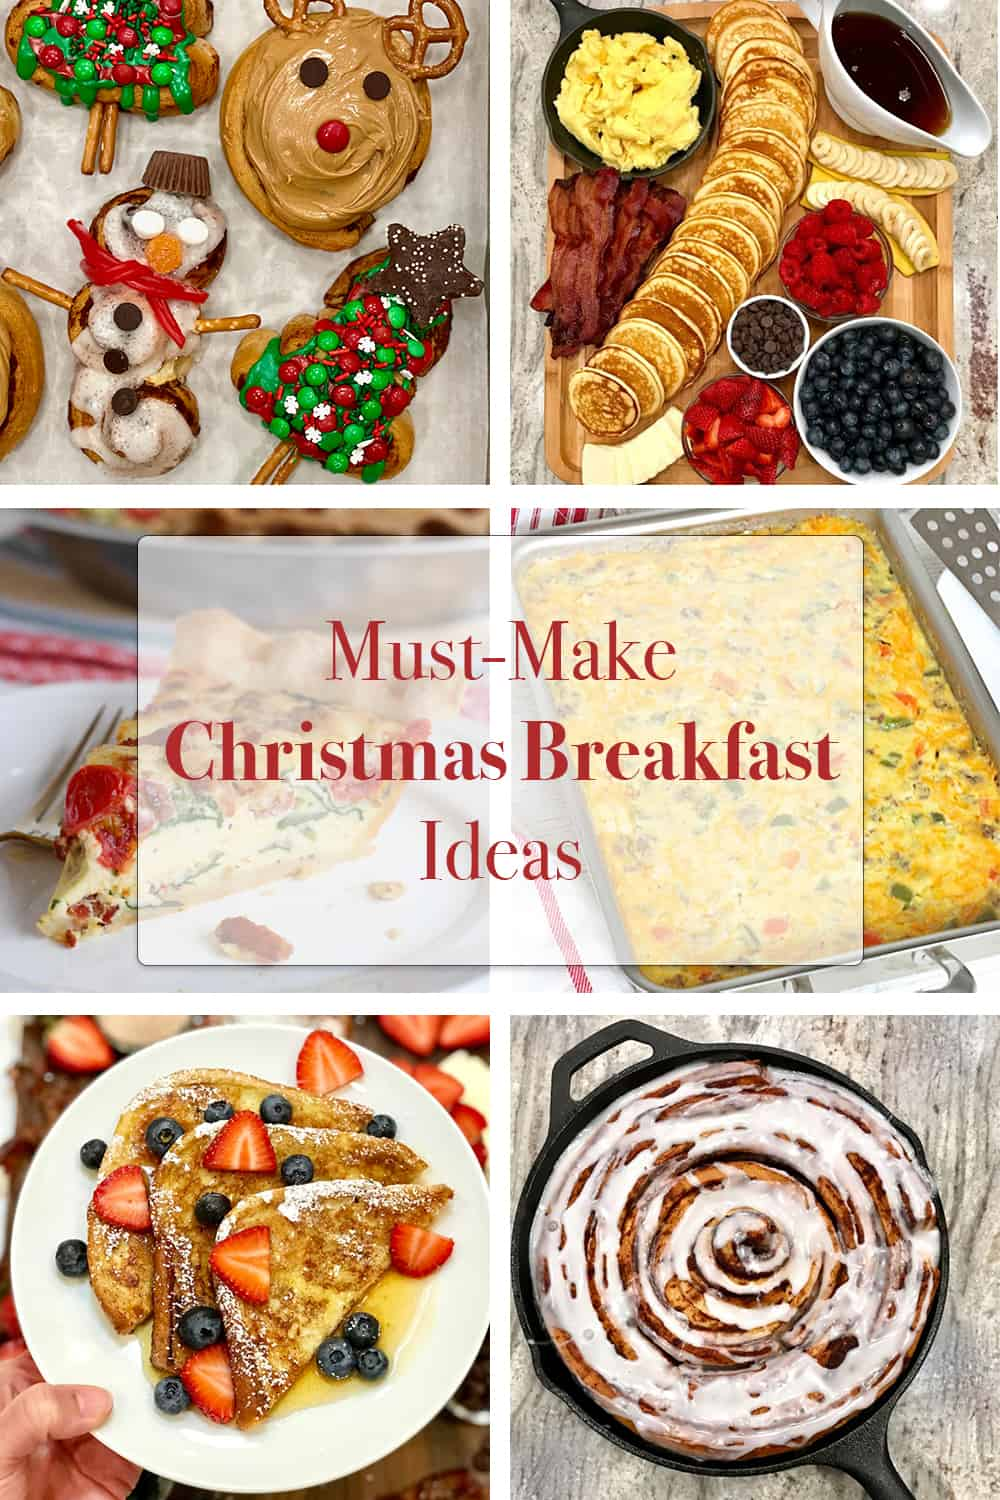 Must-Make Christmas Breakfast Ideas